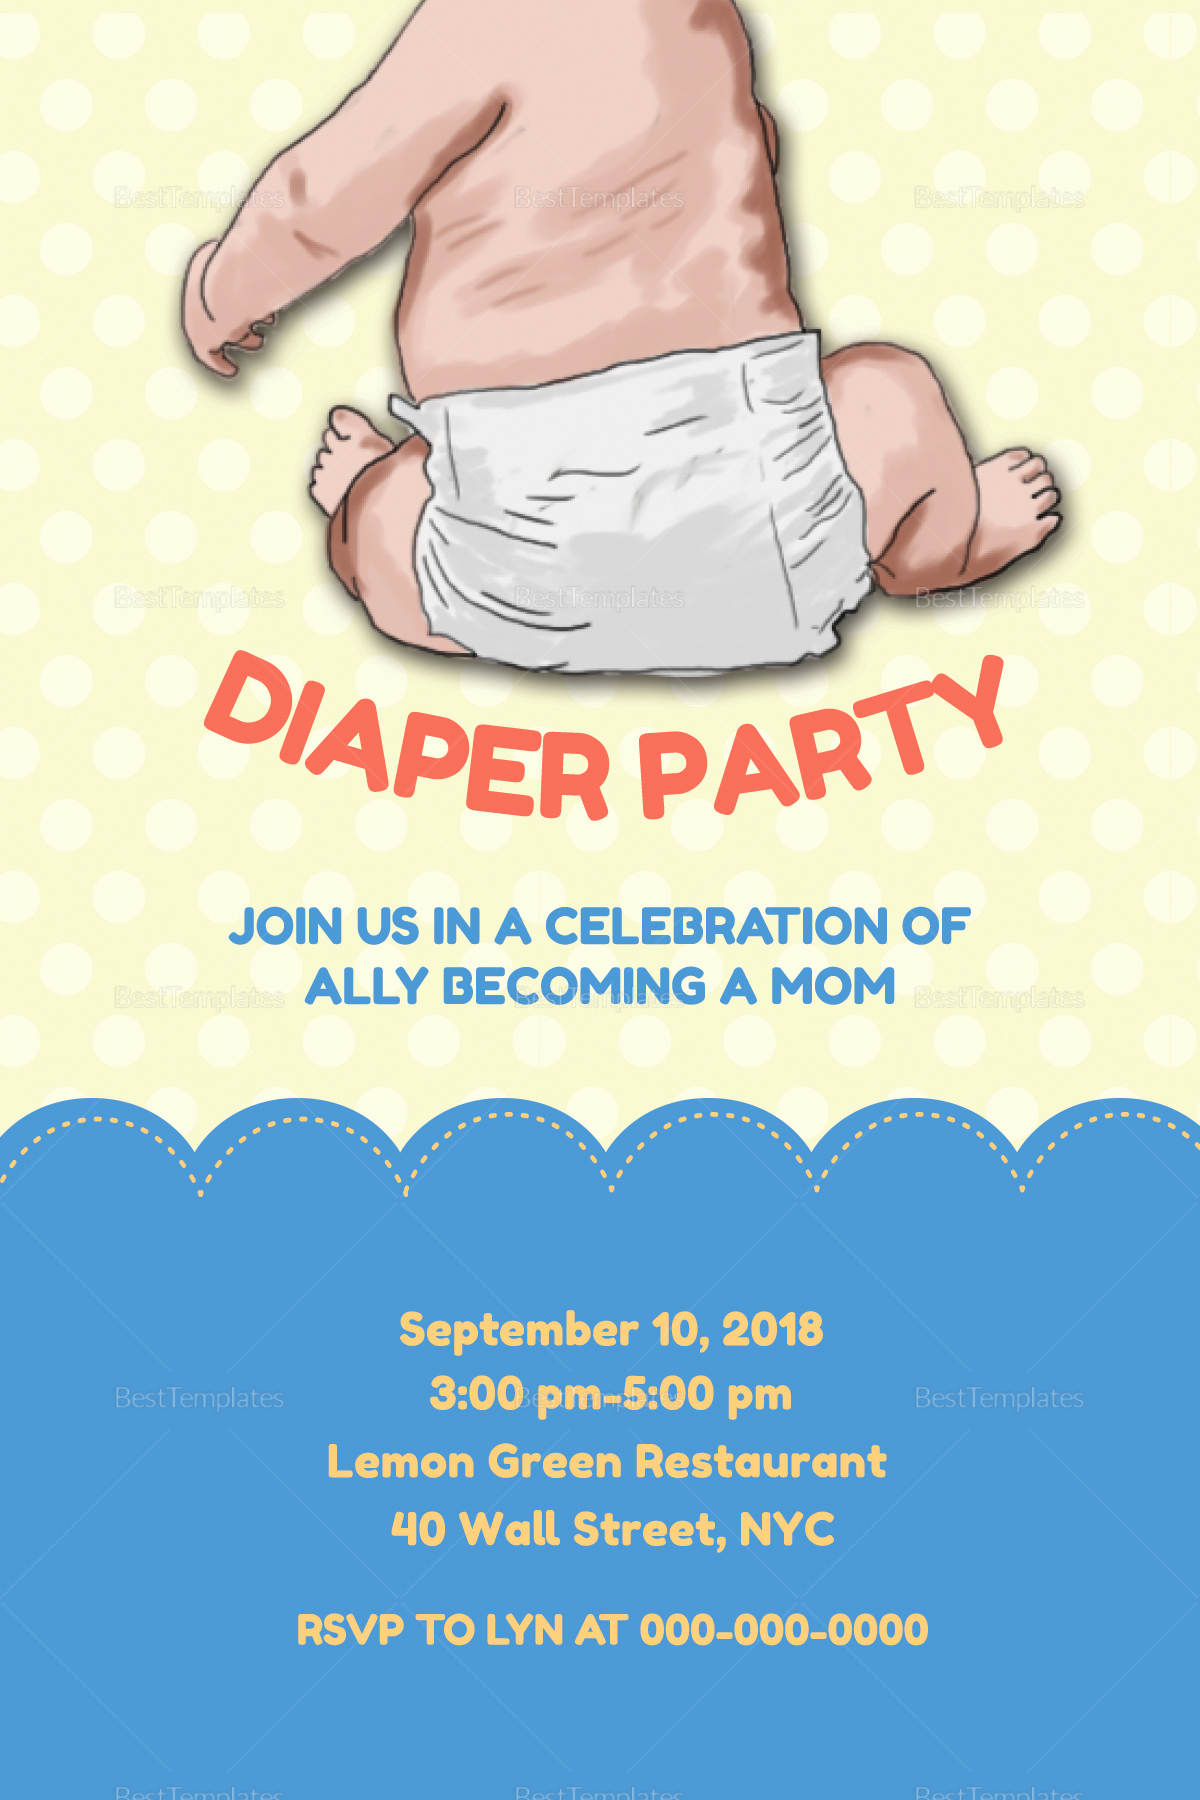 Diaper Party Invitation Template Inspirational New Mom Diaper Party Invitation Design Template In Psd